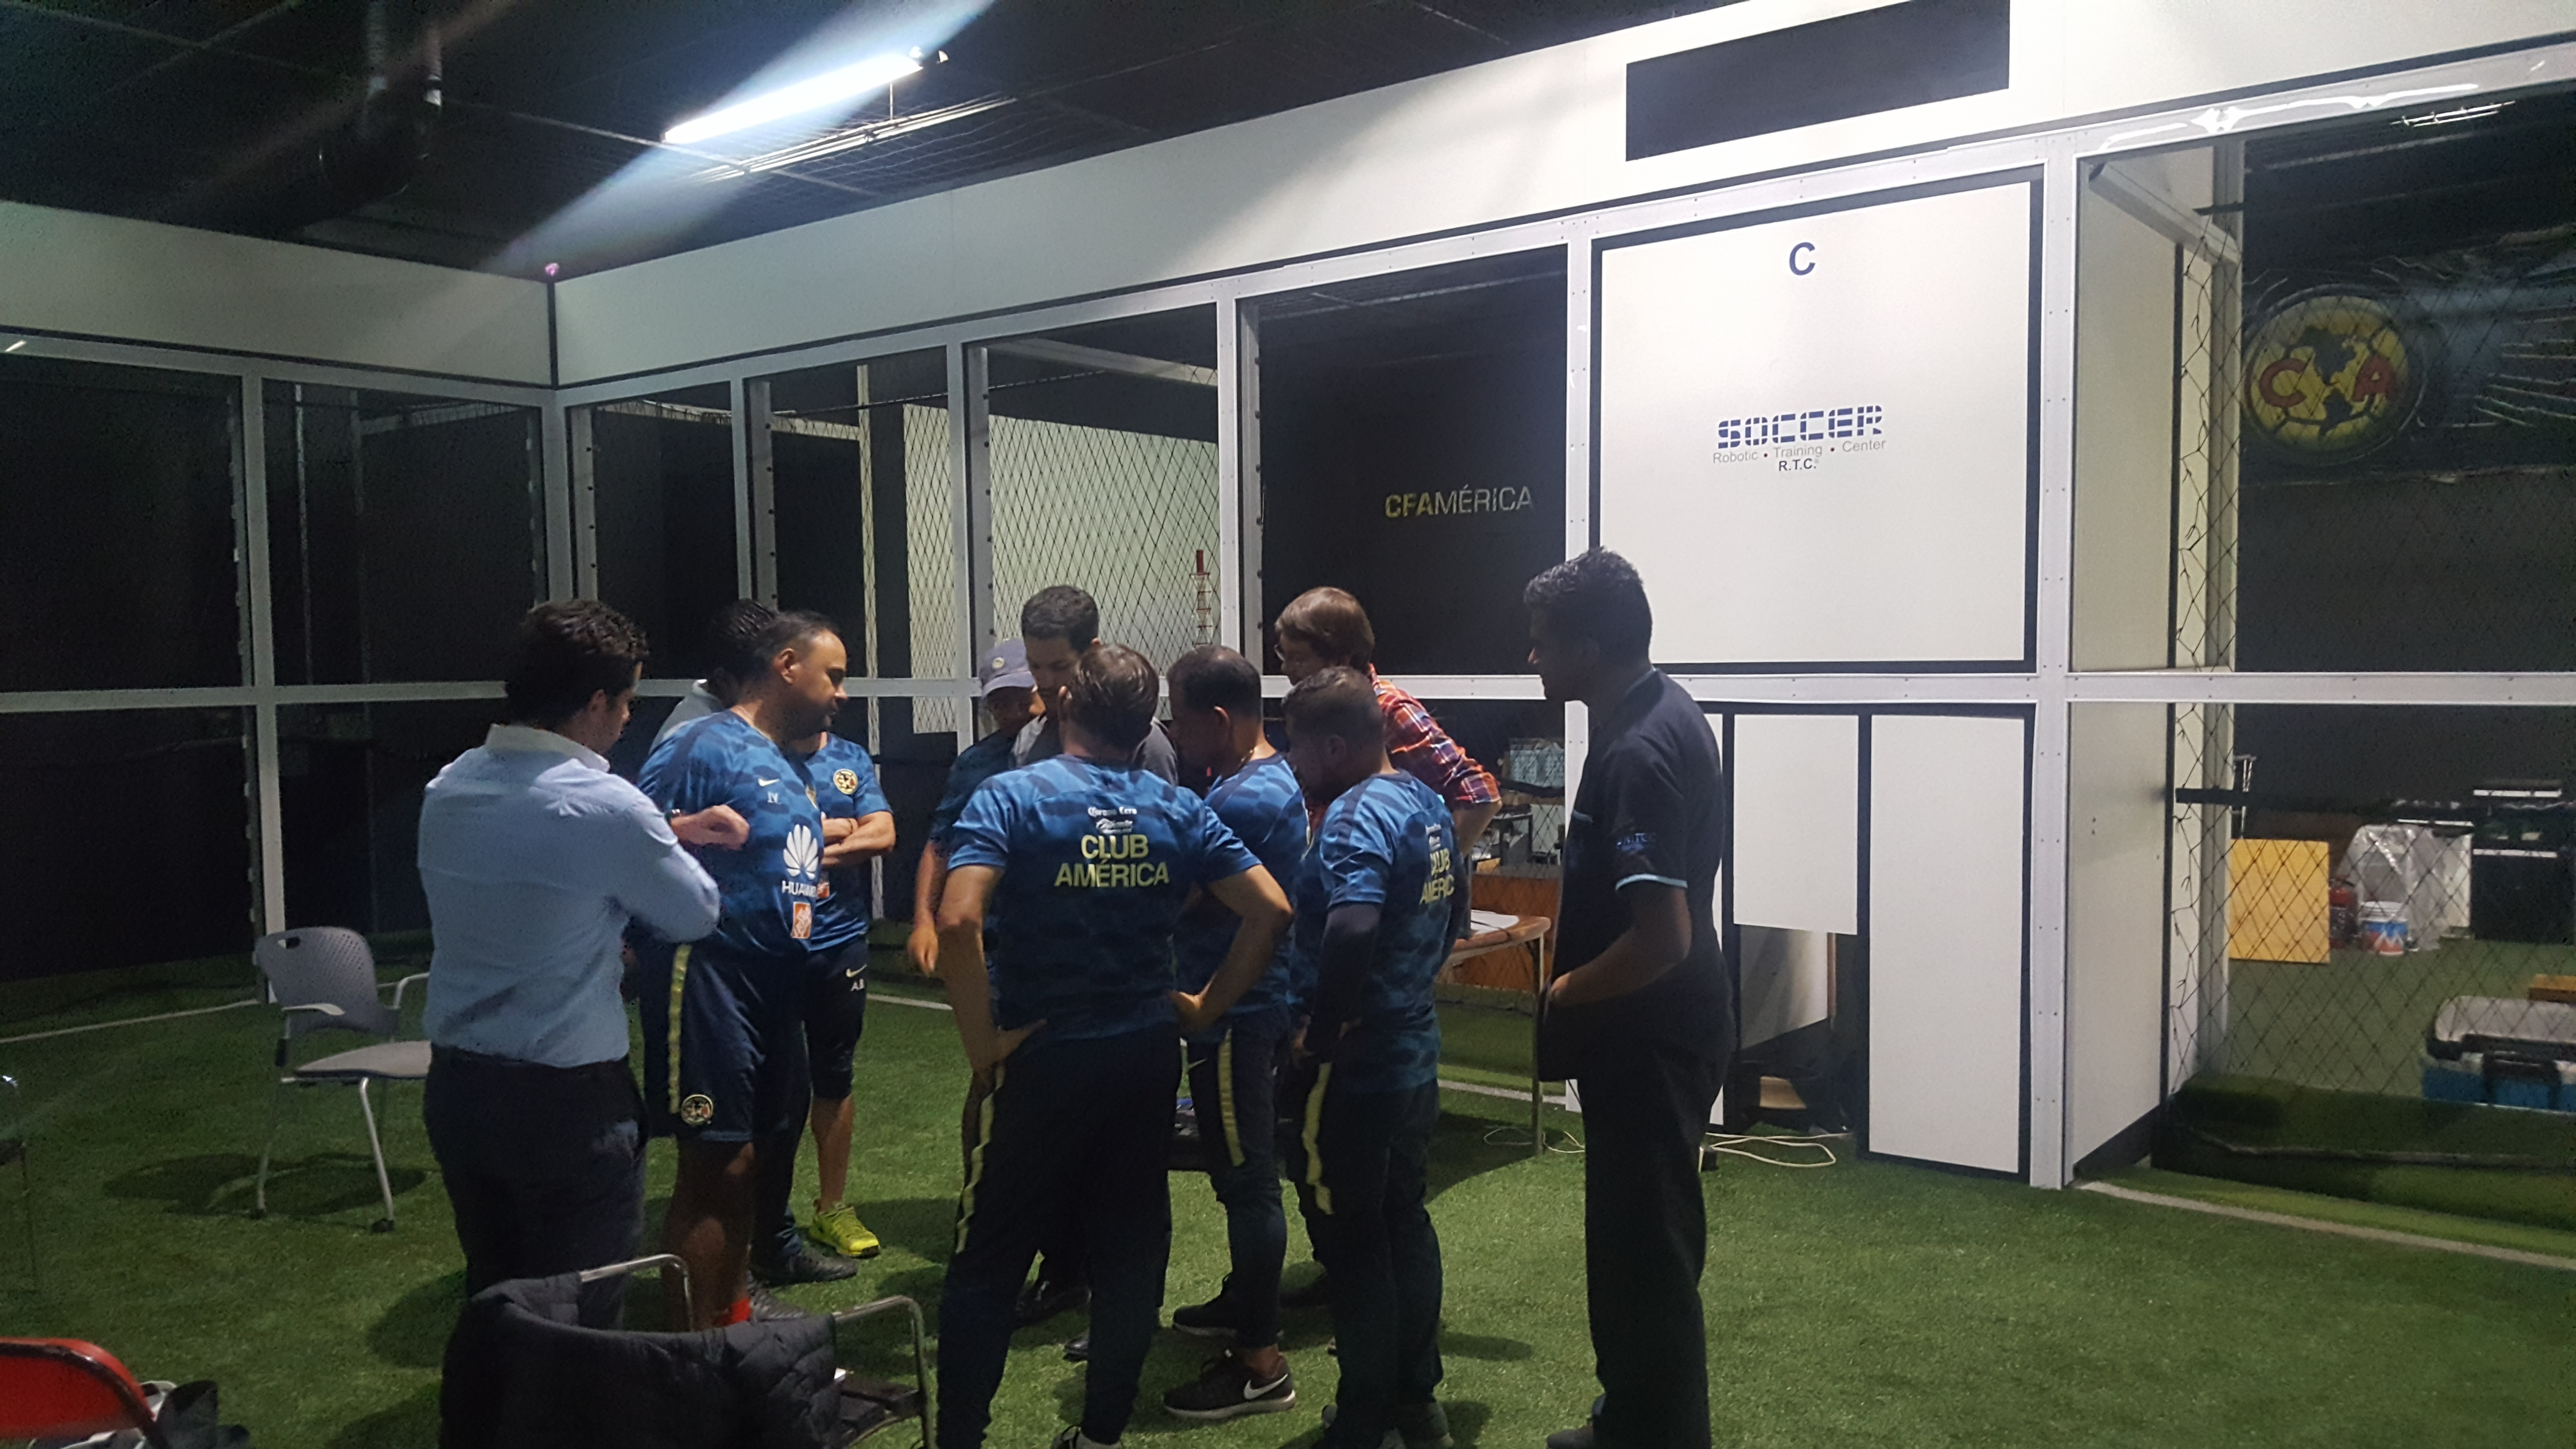 Club America first team in Mexico to use Medical Thermography